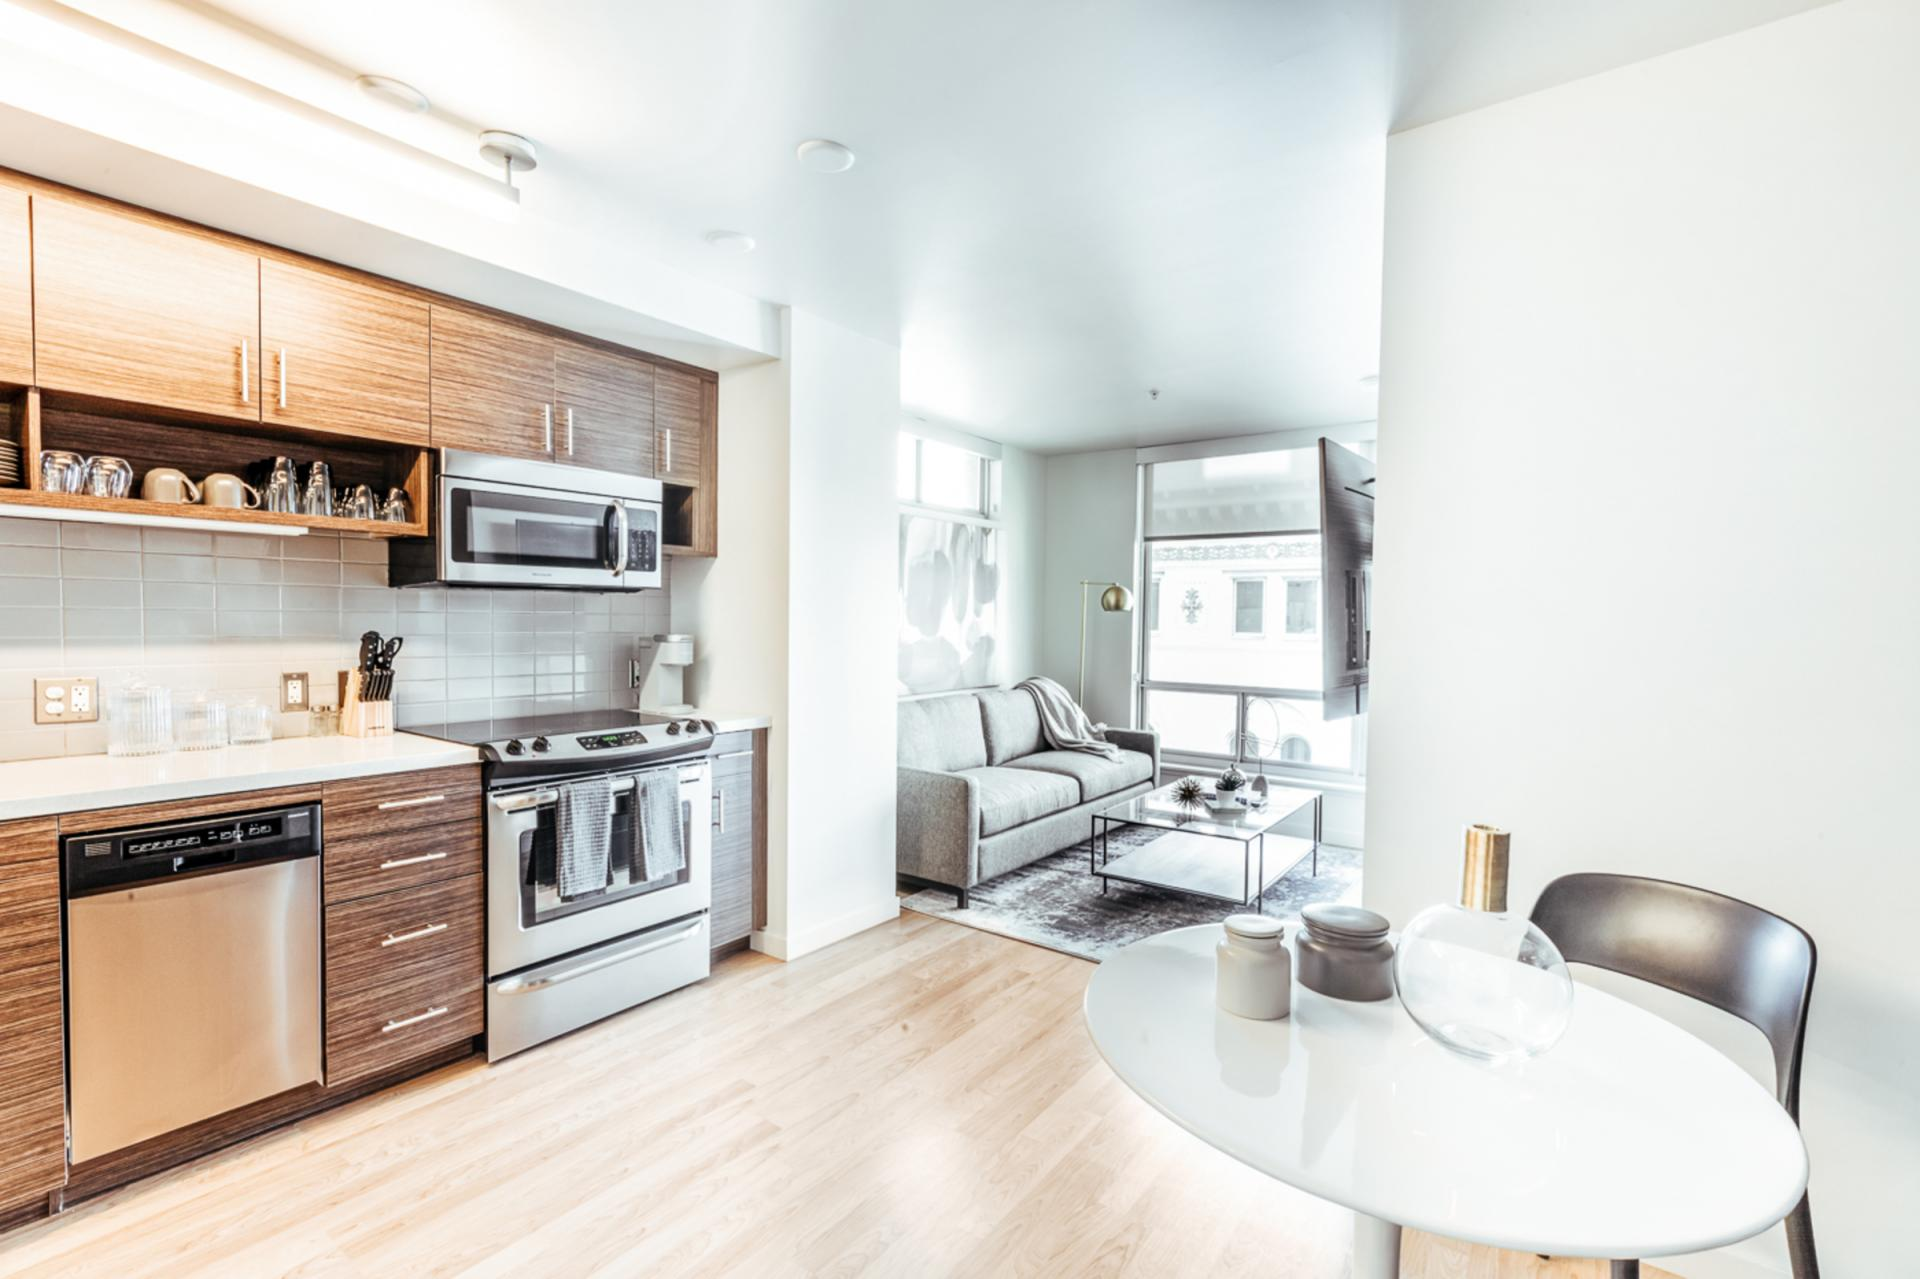 Kitchen diner at Apartments at Etta, Polk Gulch, San Francisco